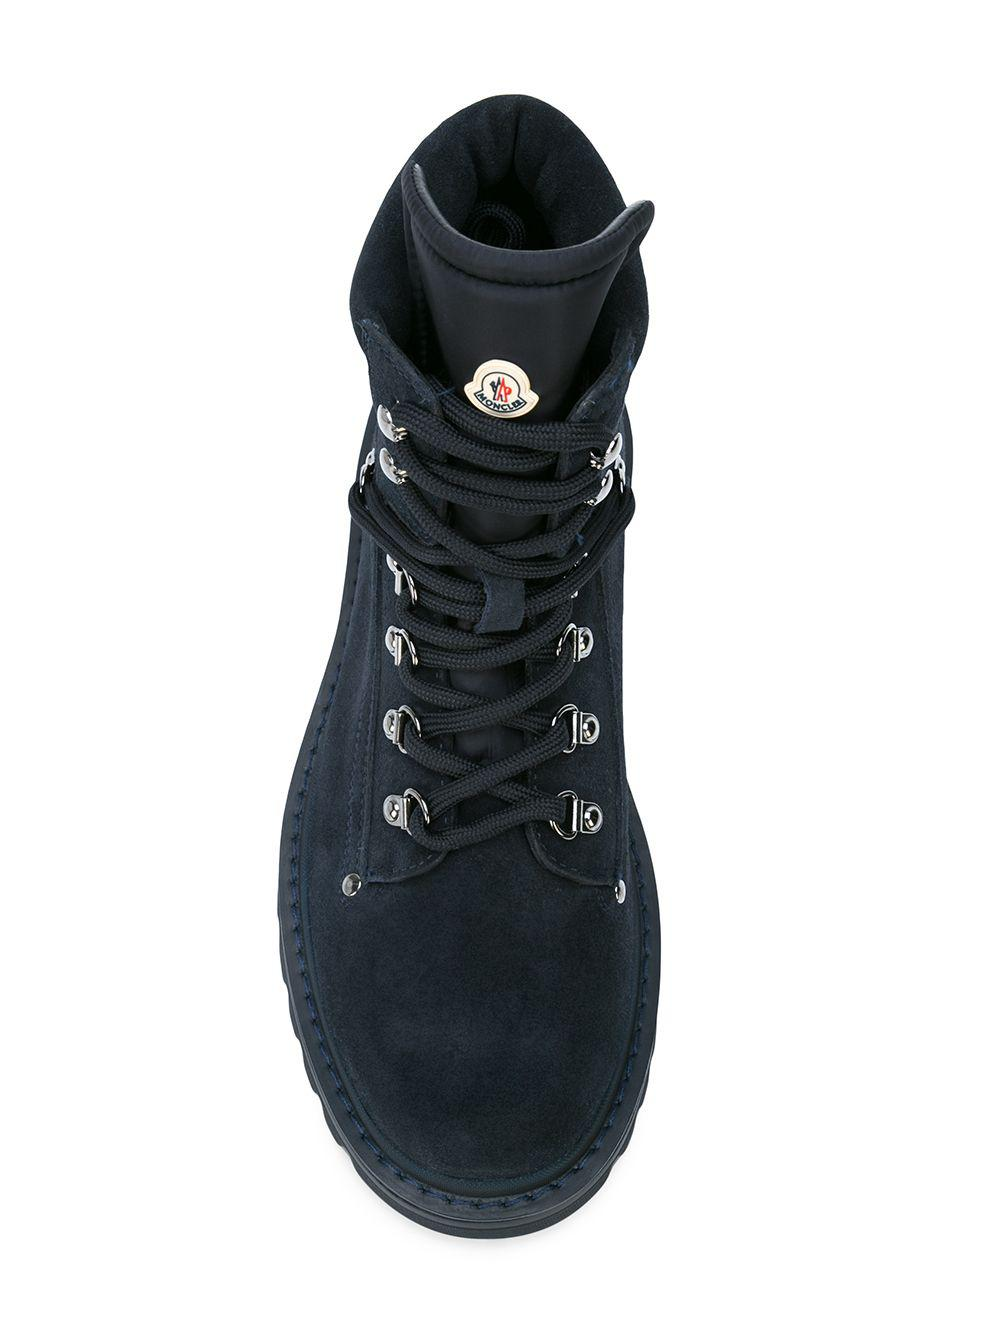 1a1f53505ce6 Lyst - Moncler Combat Boots in Blue for Men